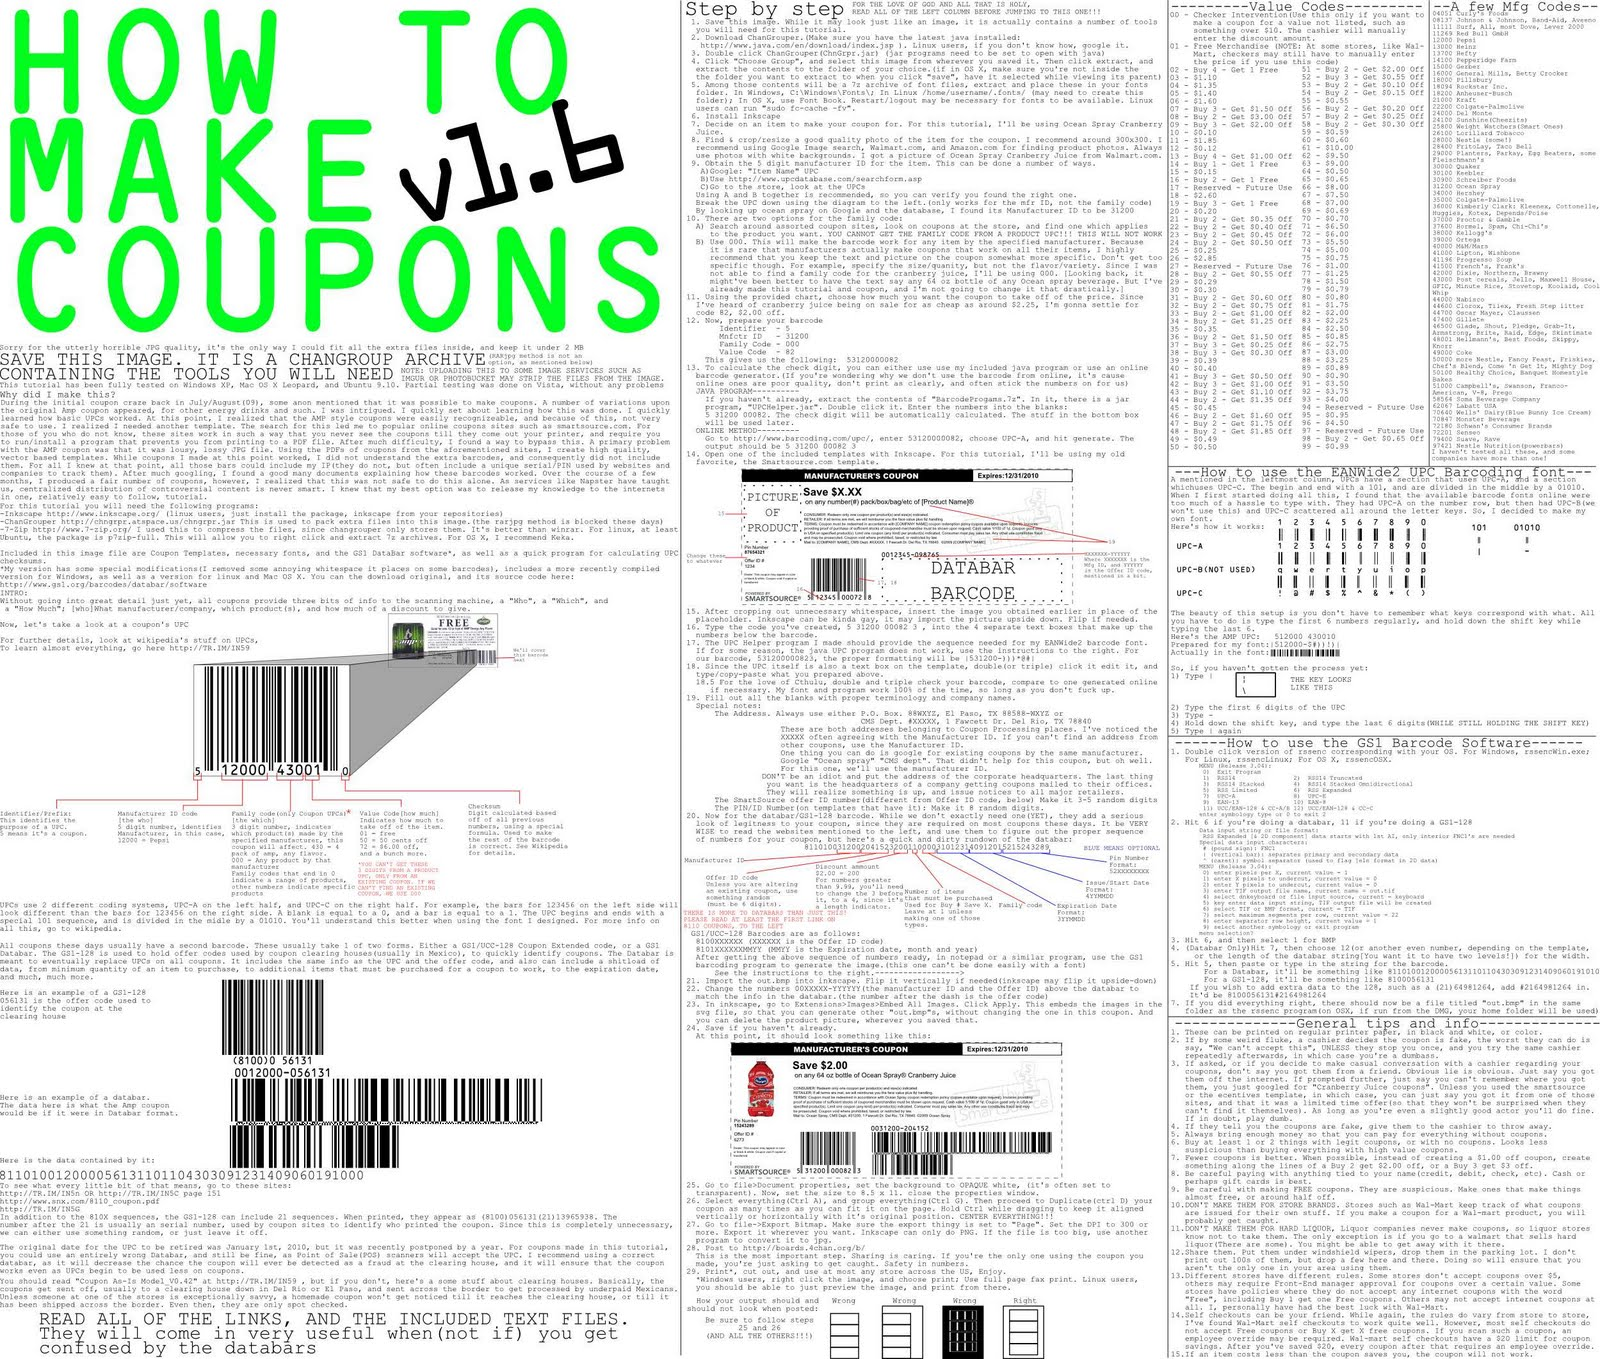 4chan coupon making guide / Deals gone wild kitchener